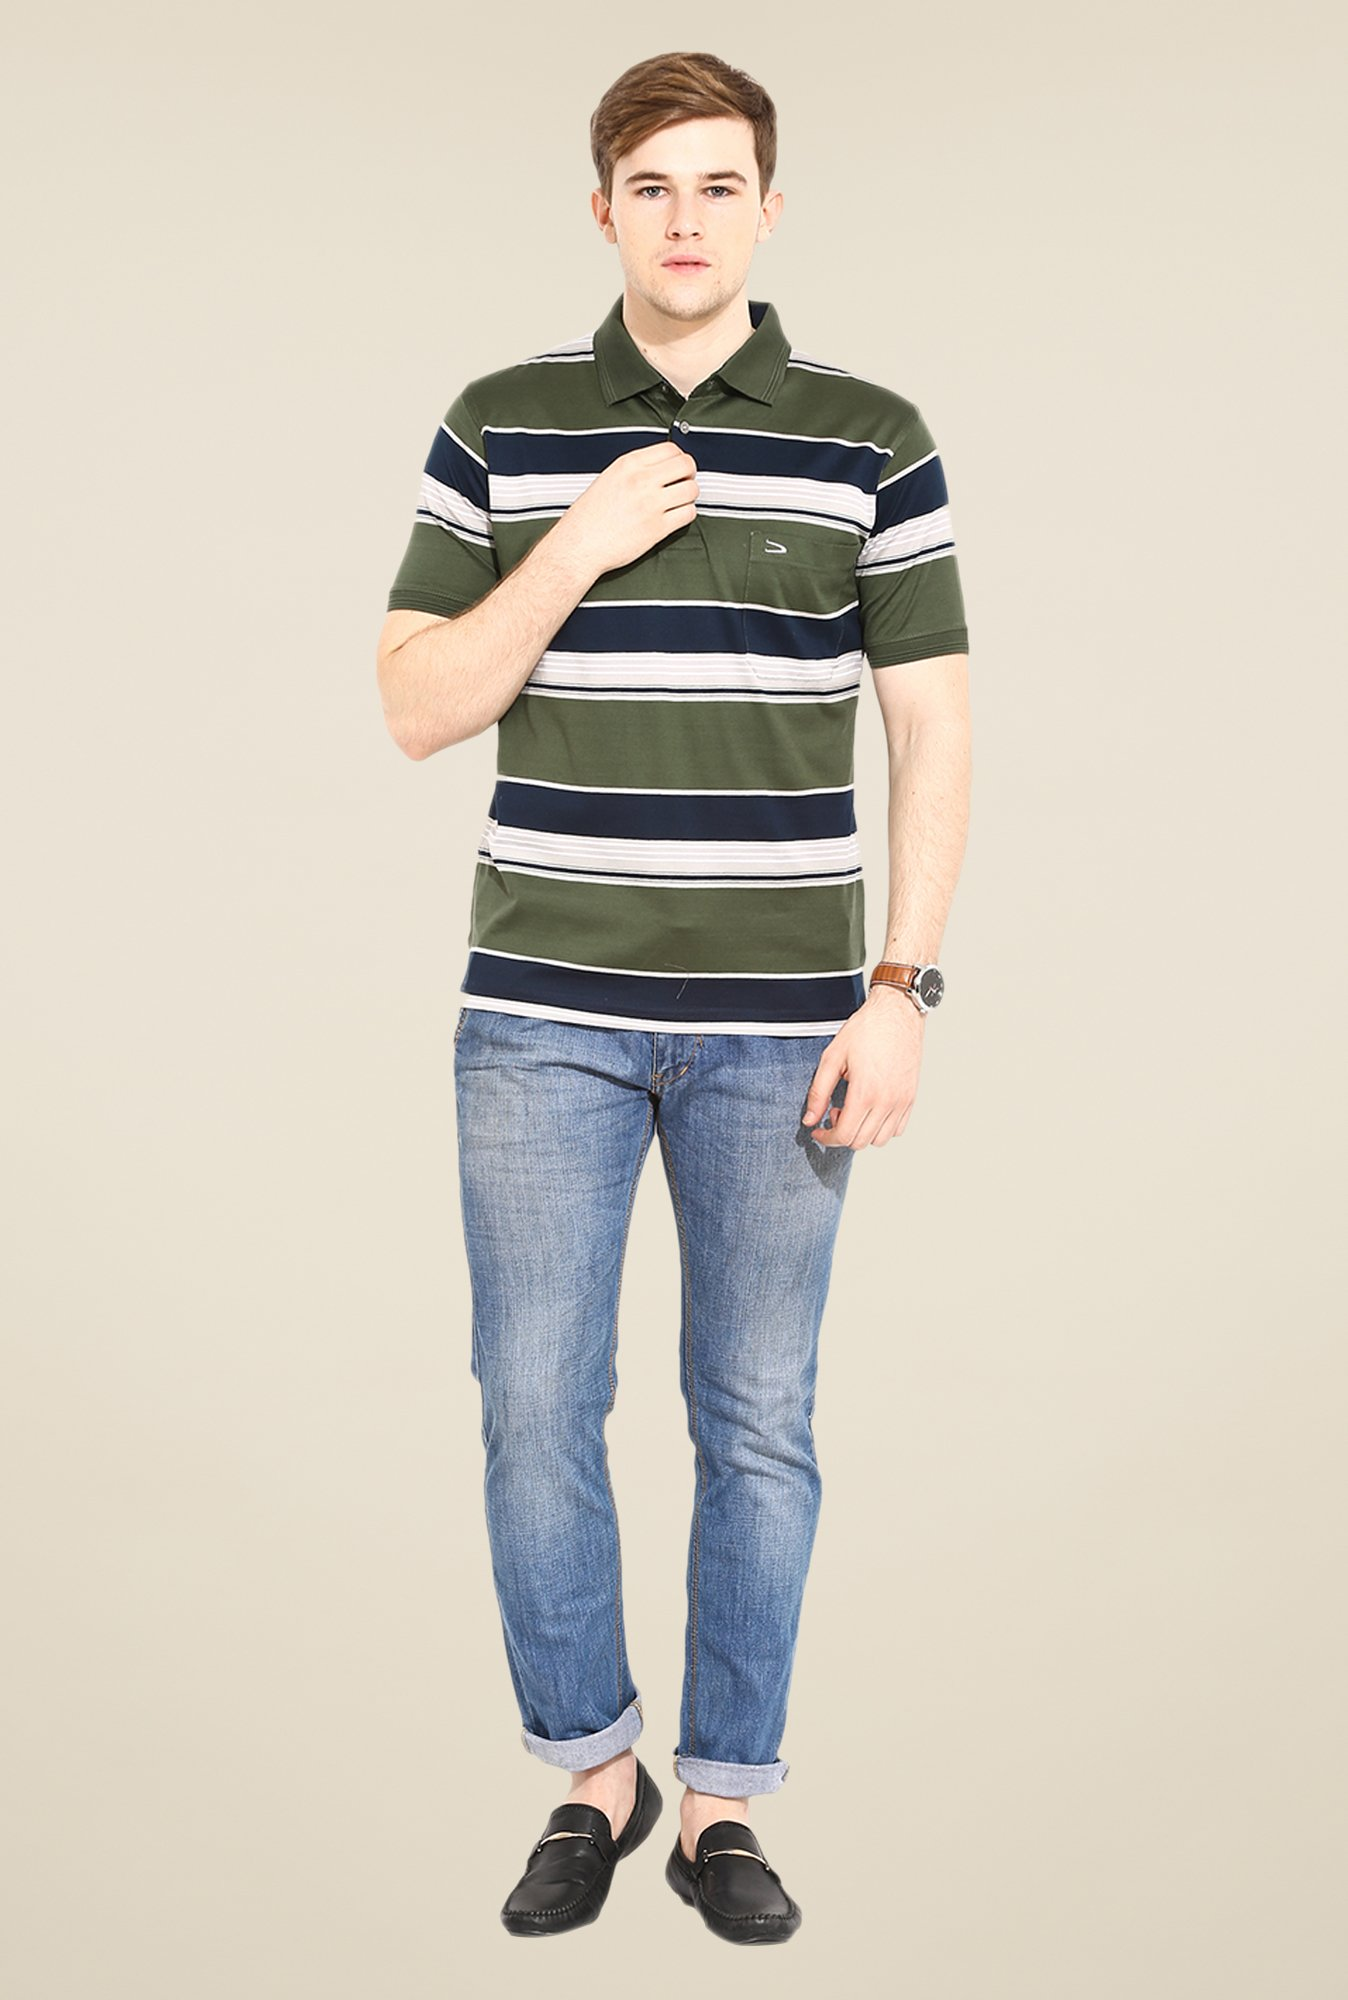 Duke Stardust Olive Striped T Shirt